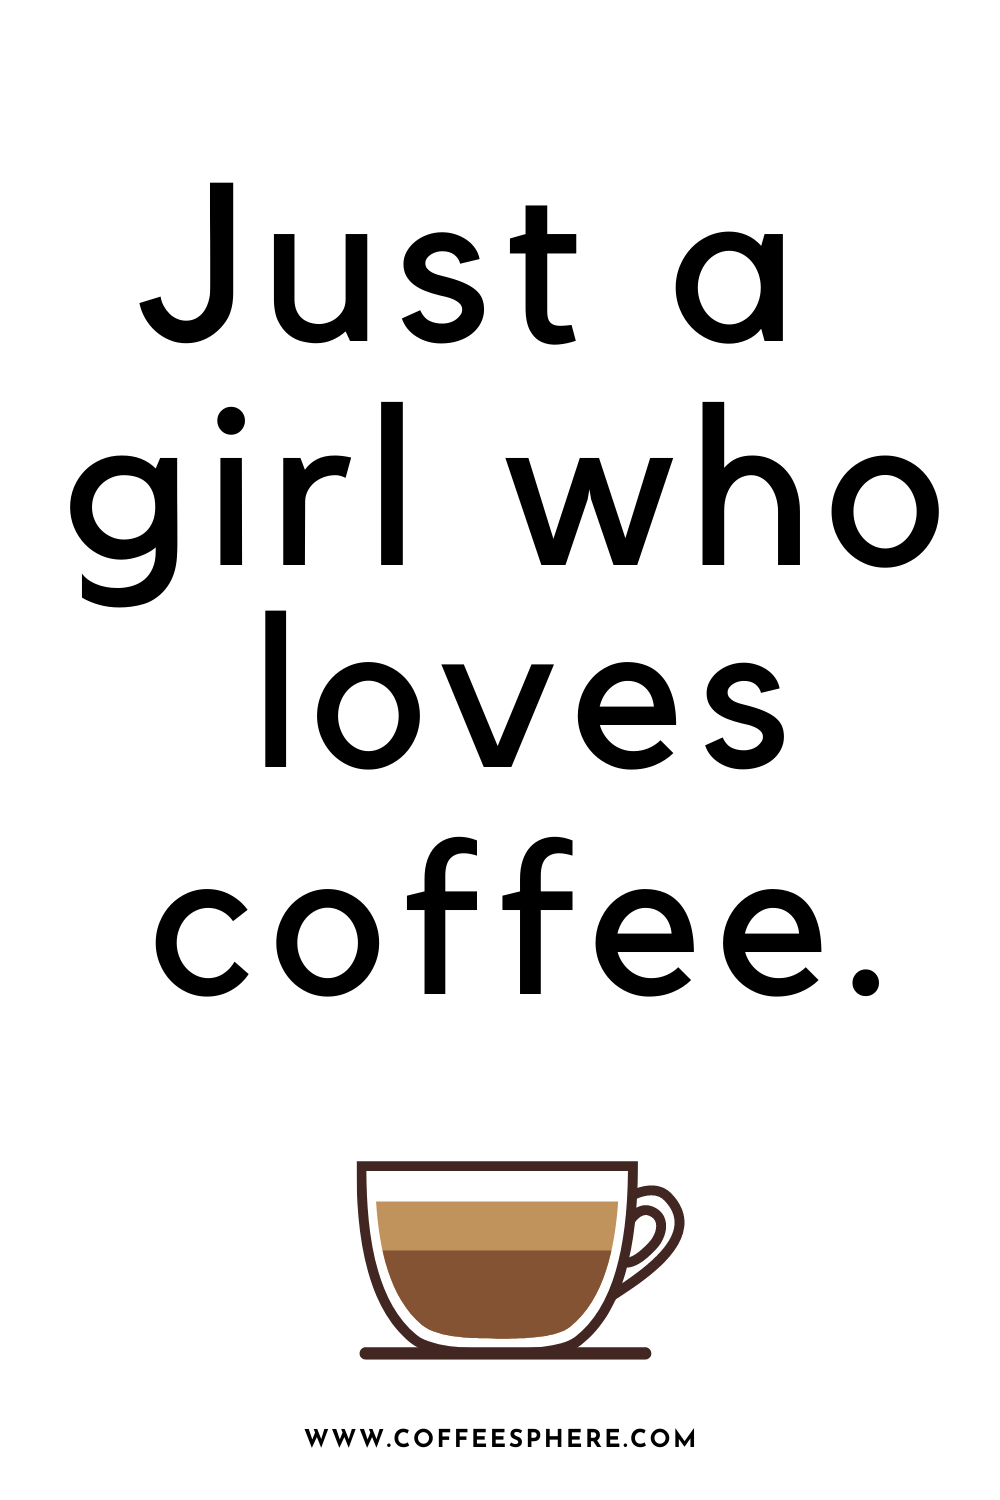 25 Coffee Quotes Funny Coffee Quotes That Will Brighten Your Mood Coffeesphere Funny Coffee Quotes Coffee Humor Coffee Words